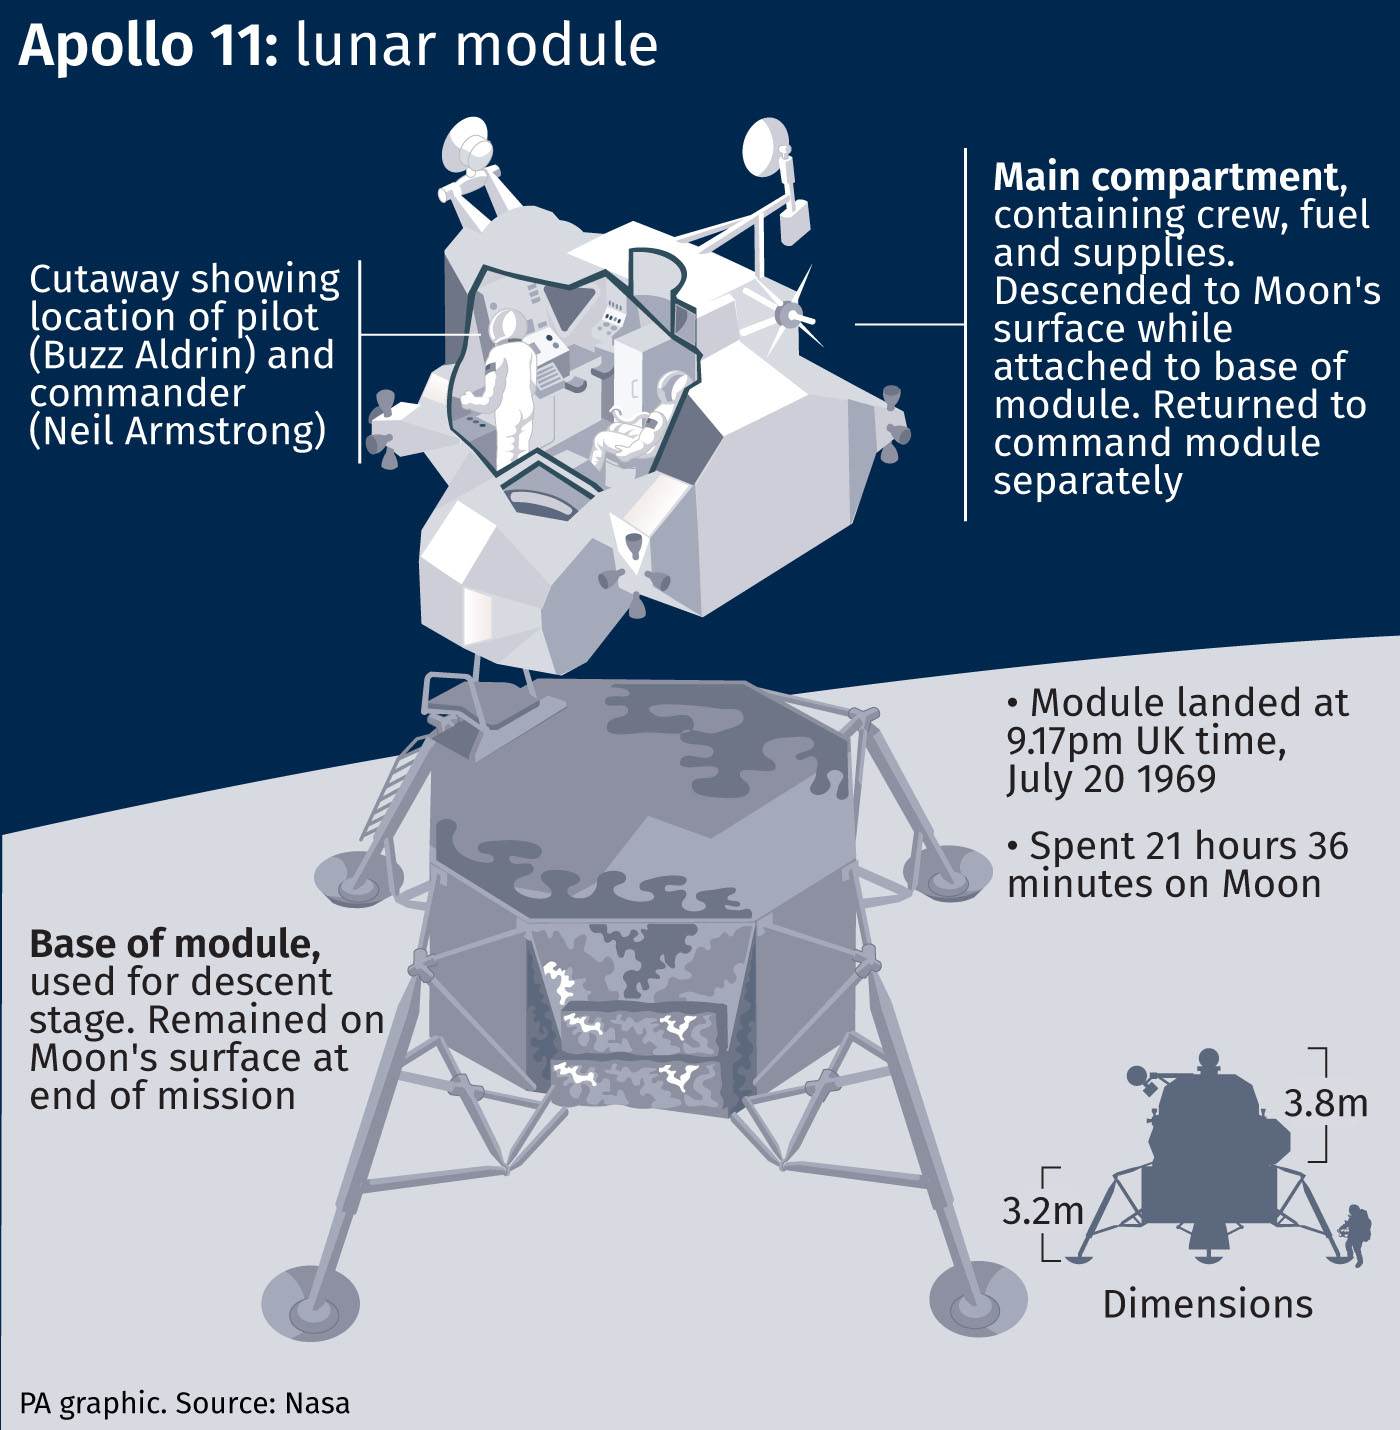 The Apollo 11 lunar module